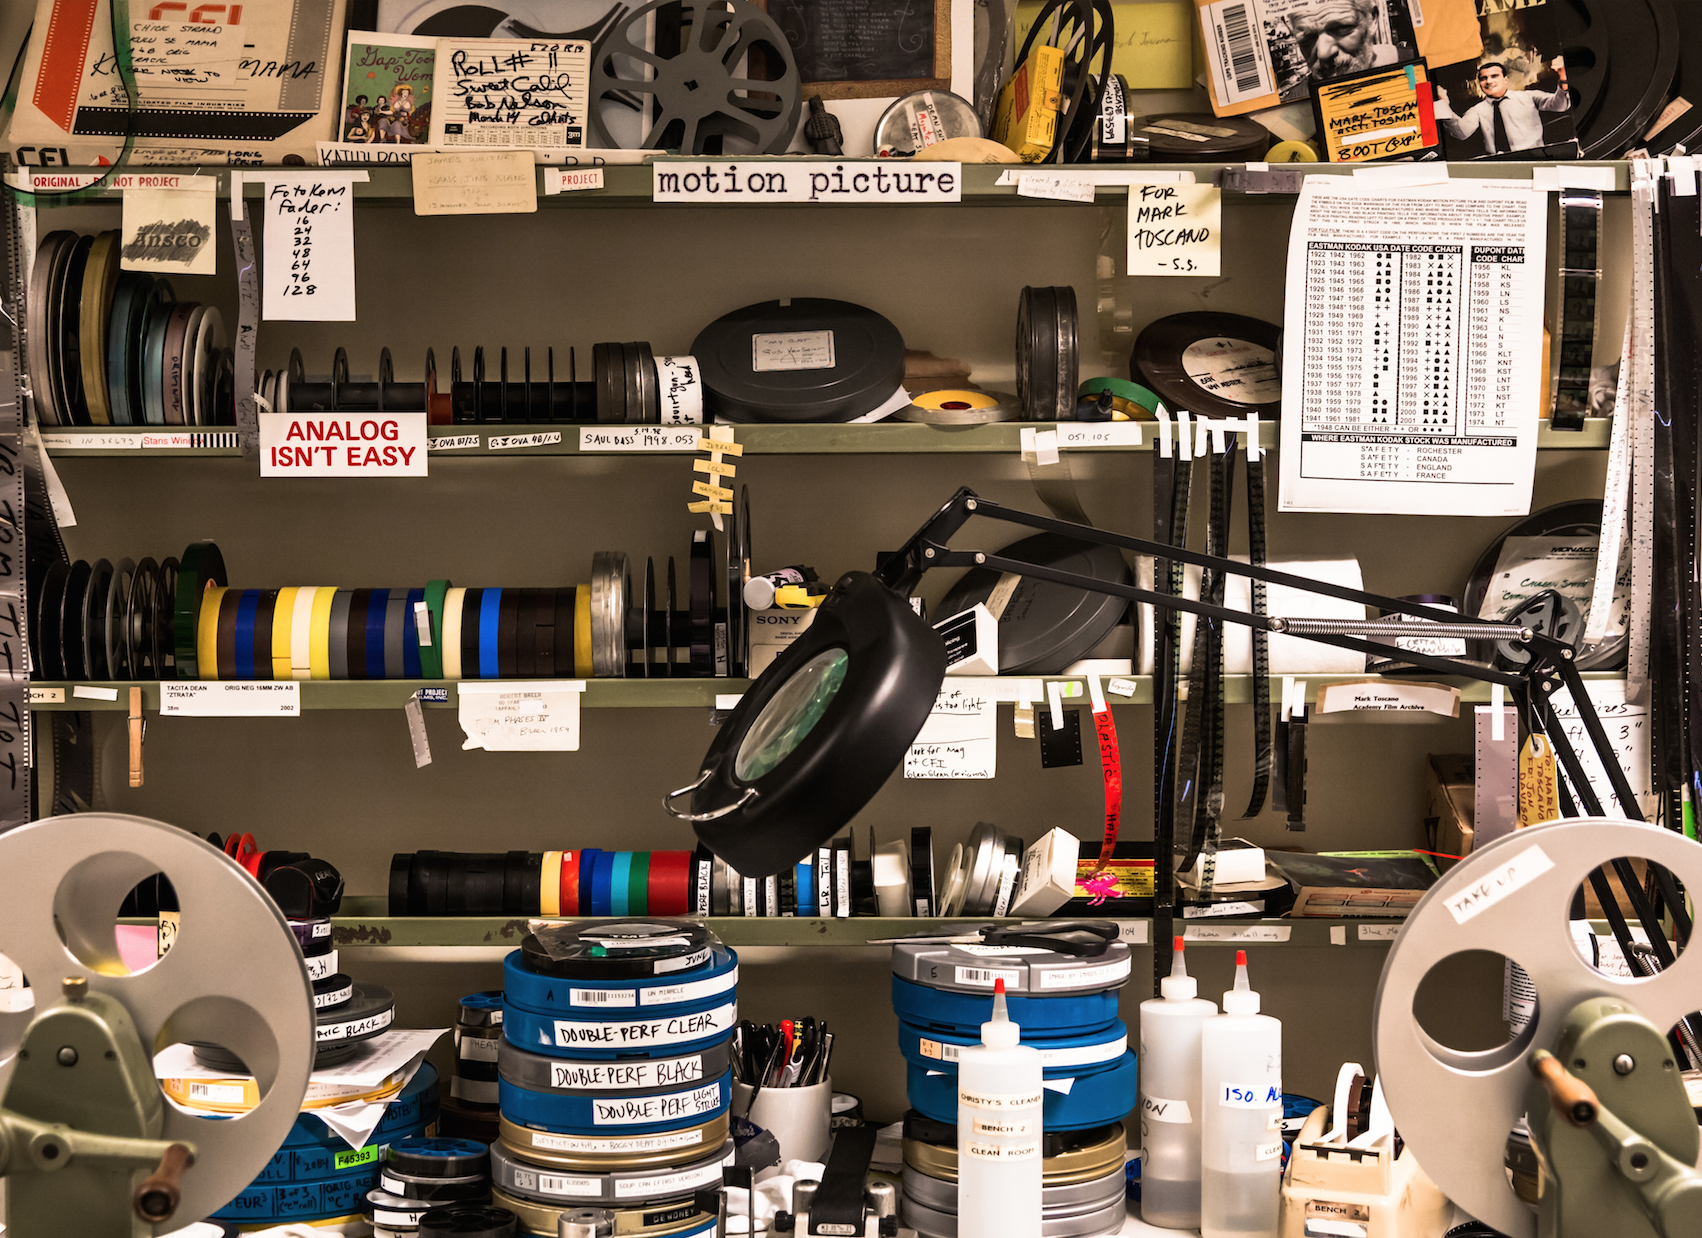 Preservationist workstation featuring film cleaner, film splicers, film tape, various film leaders, split reels, cores, and film cans